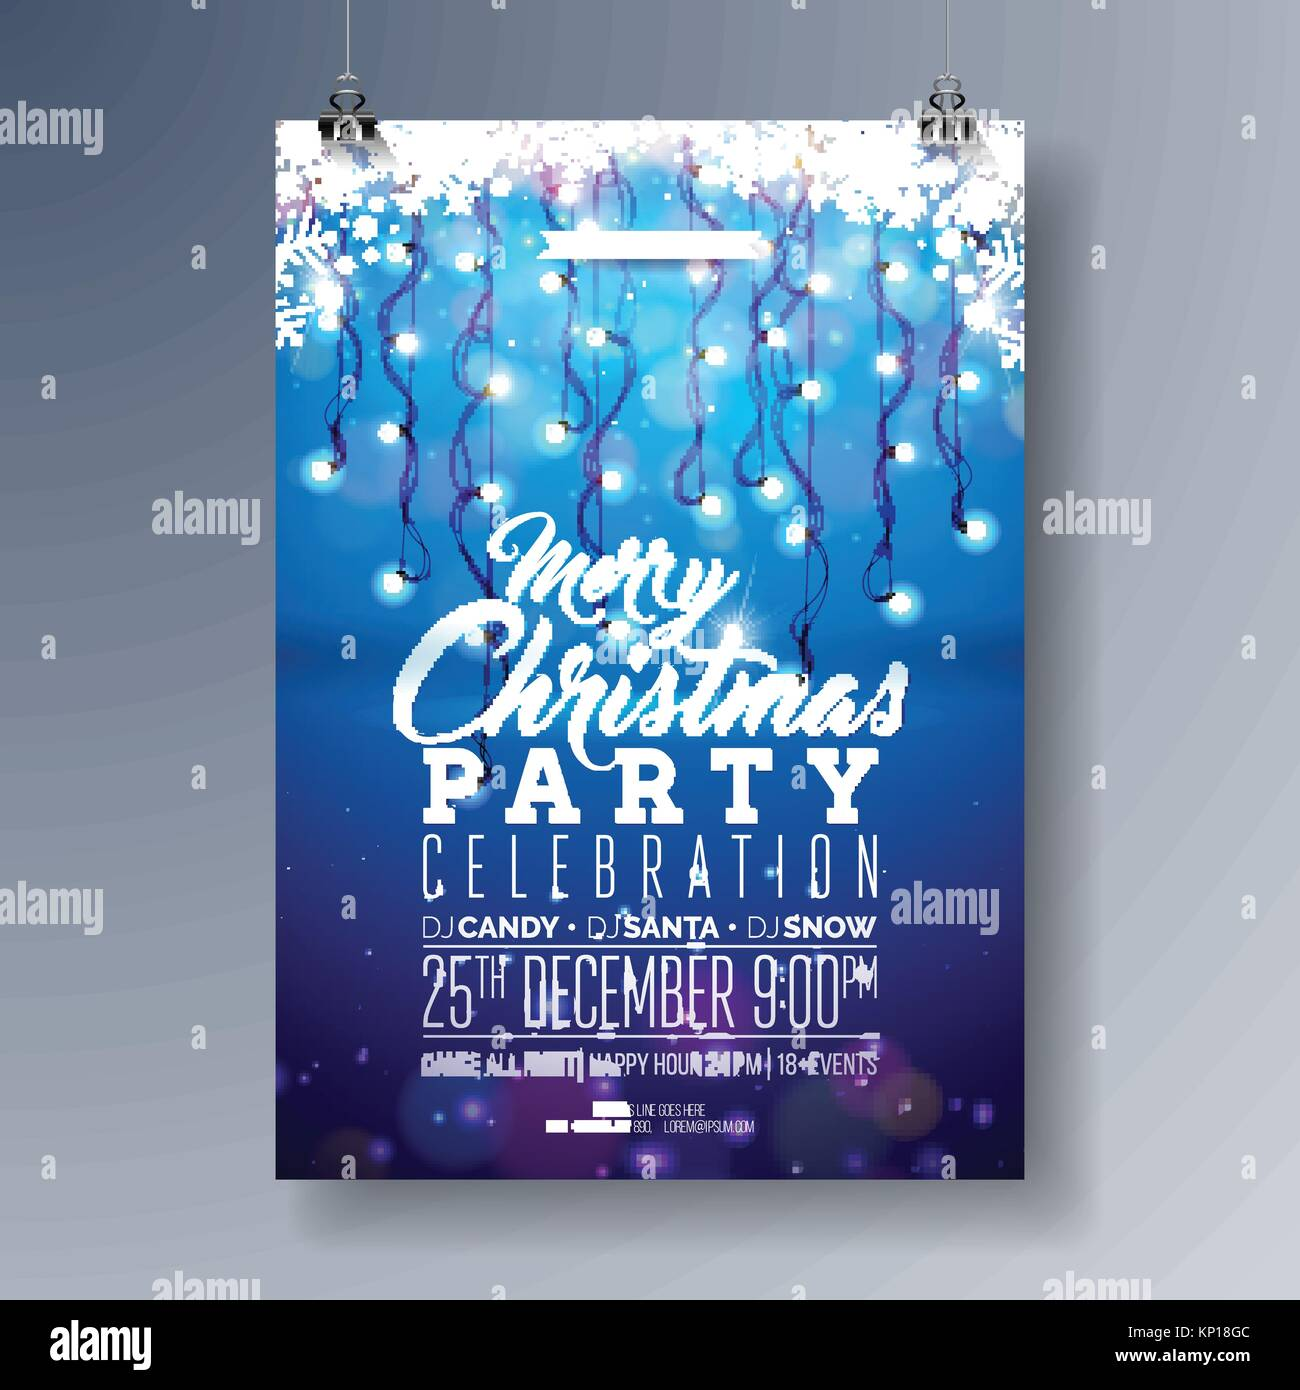 vector merry christmas party flyer design with holiday typography stock vector art illustration vector image 168444428 alamy